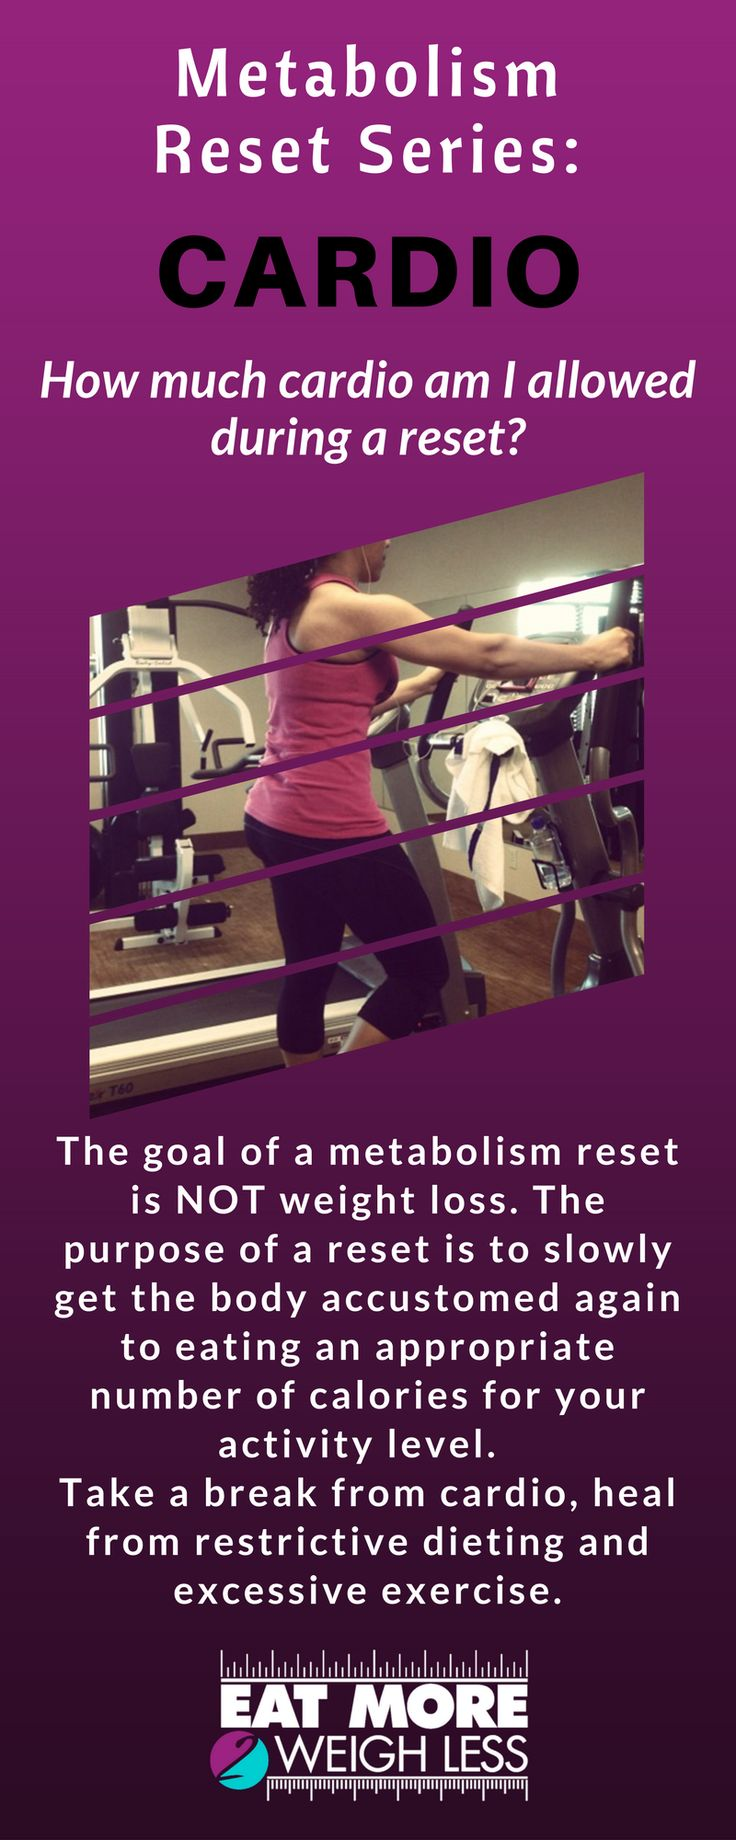 27 best Metabolism Reset images on Pinterest | Confidence ...